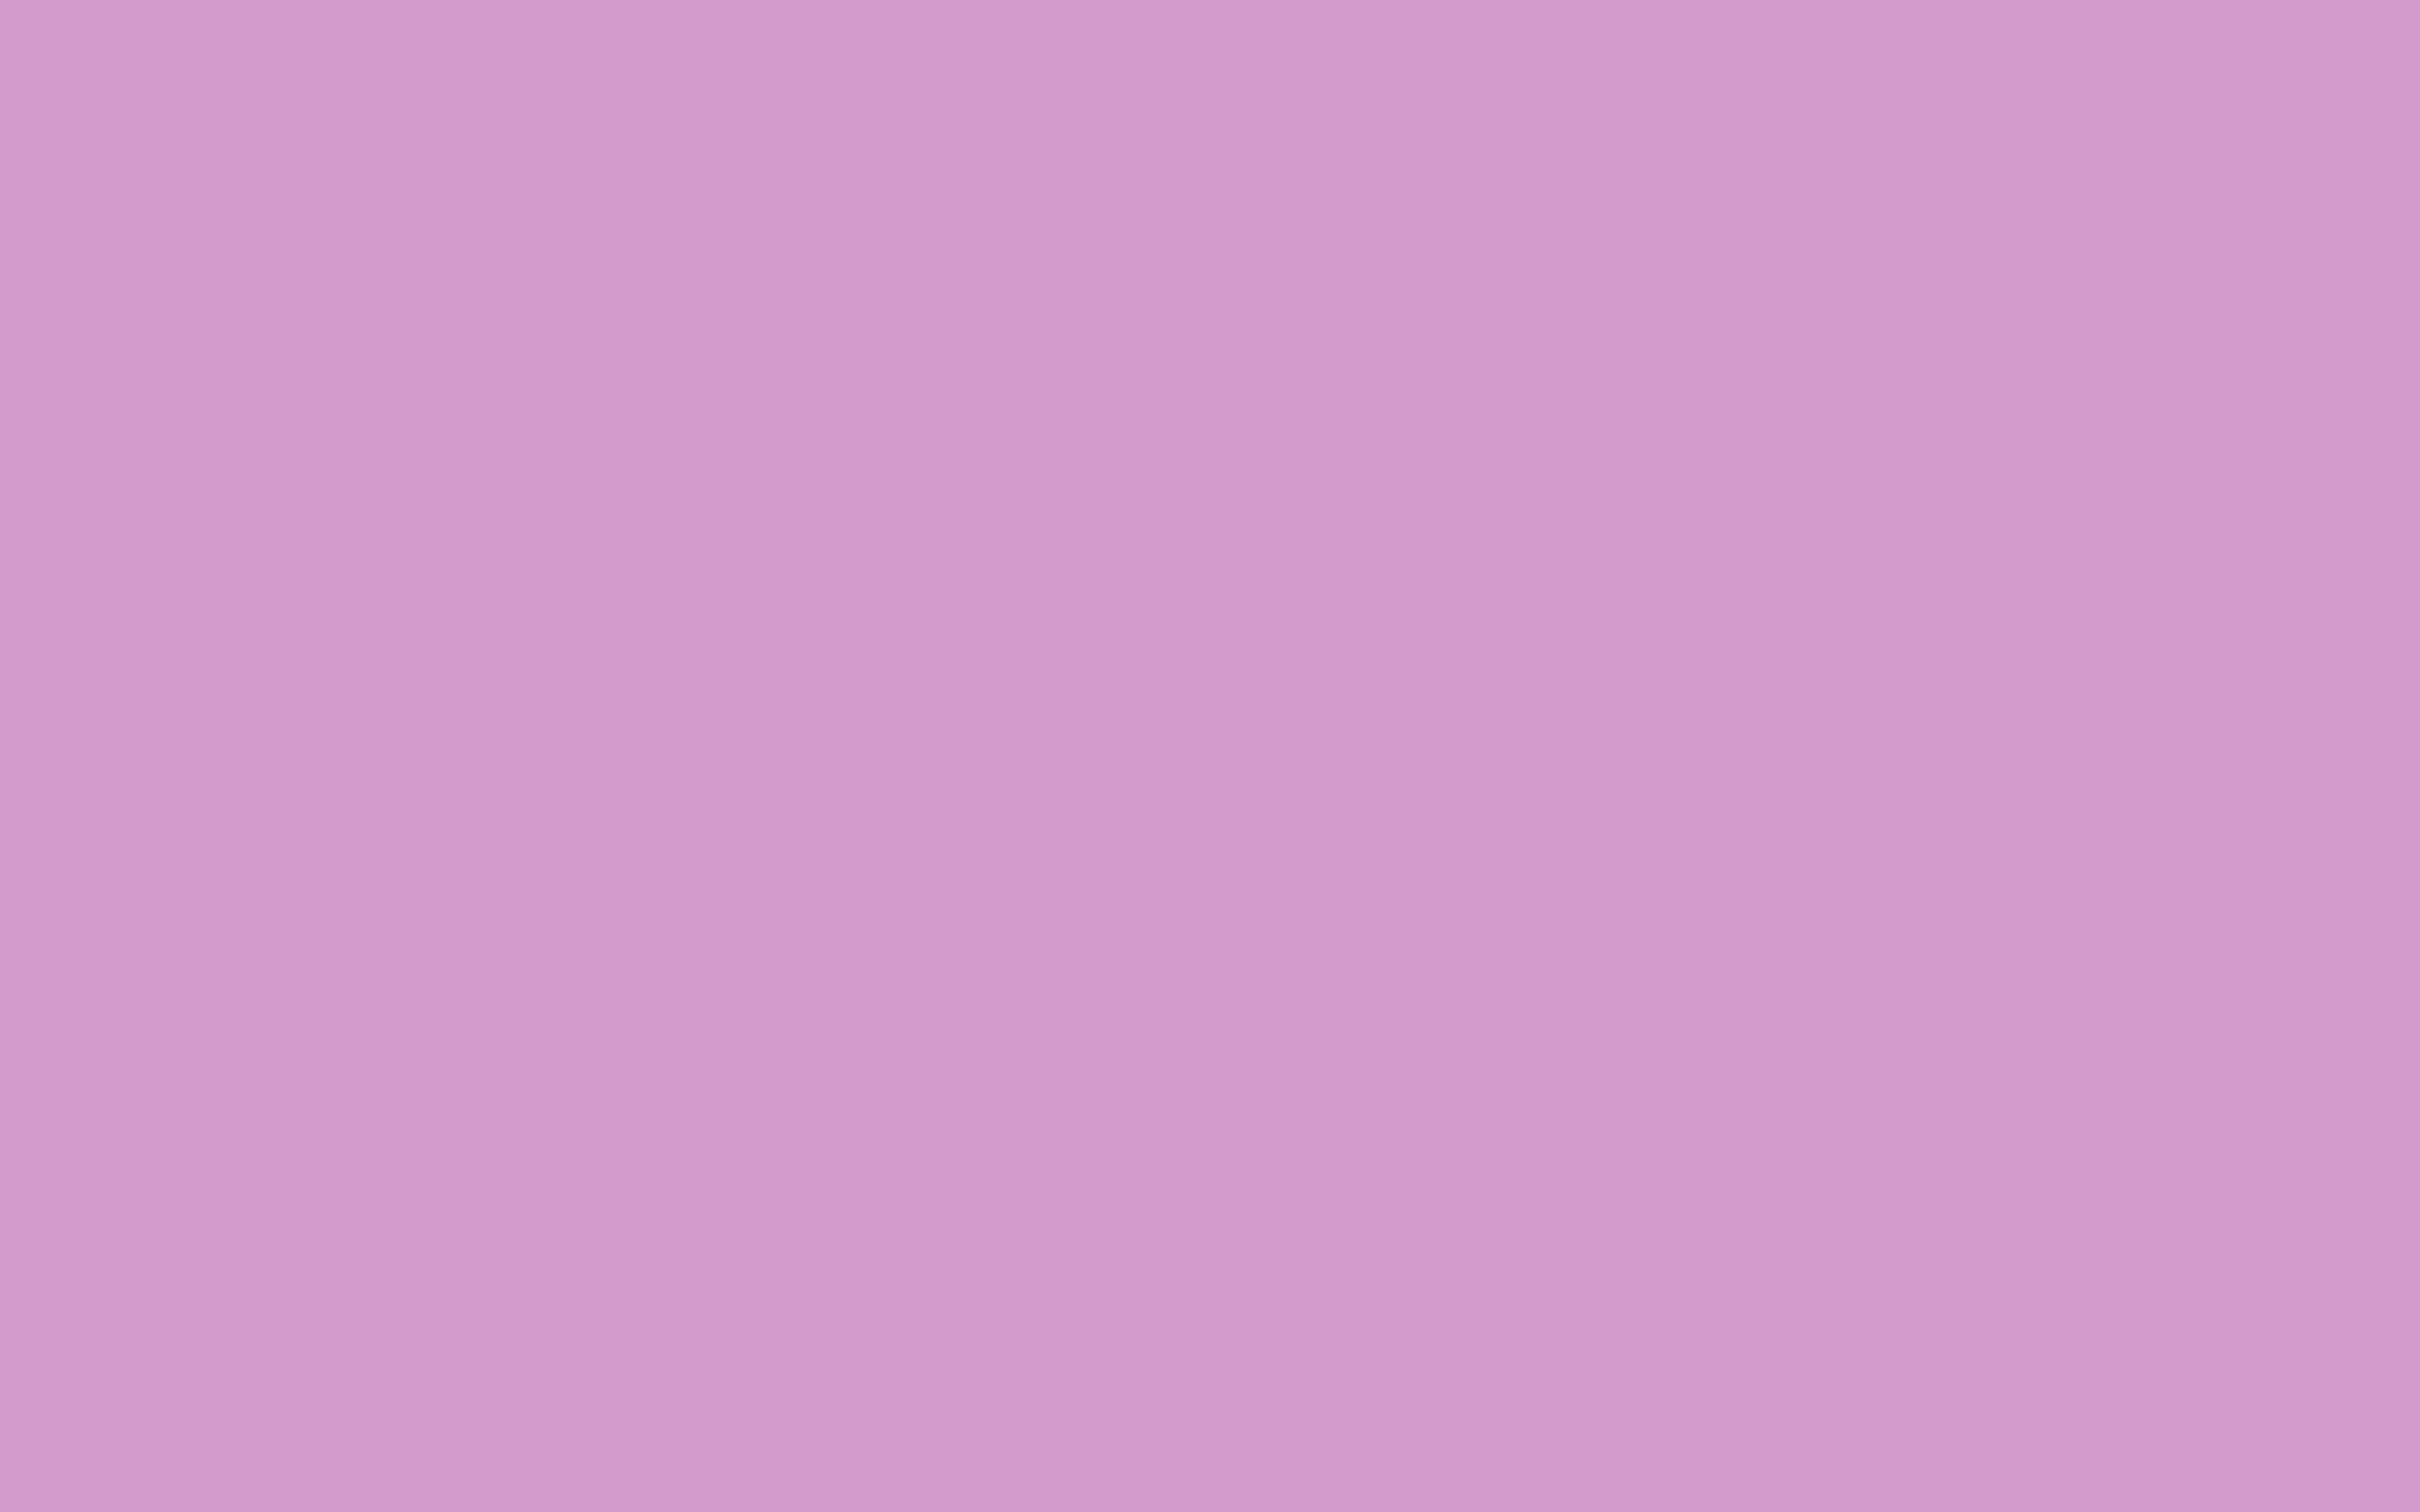 2560x1600 Light Medium Orchid Solid Color Background